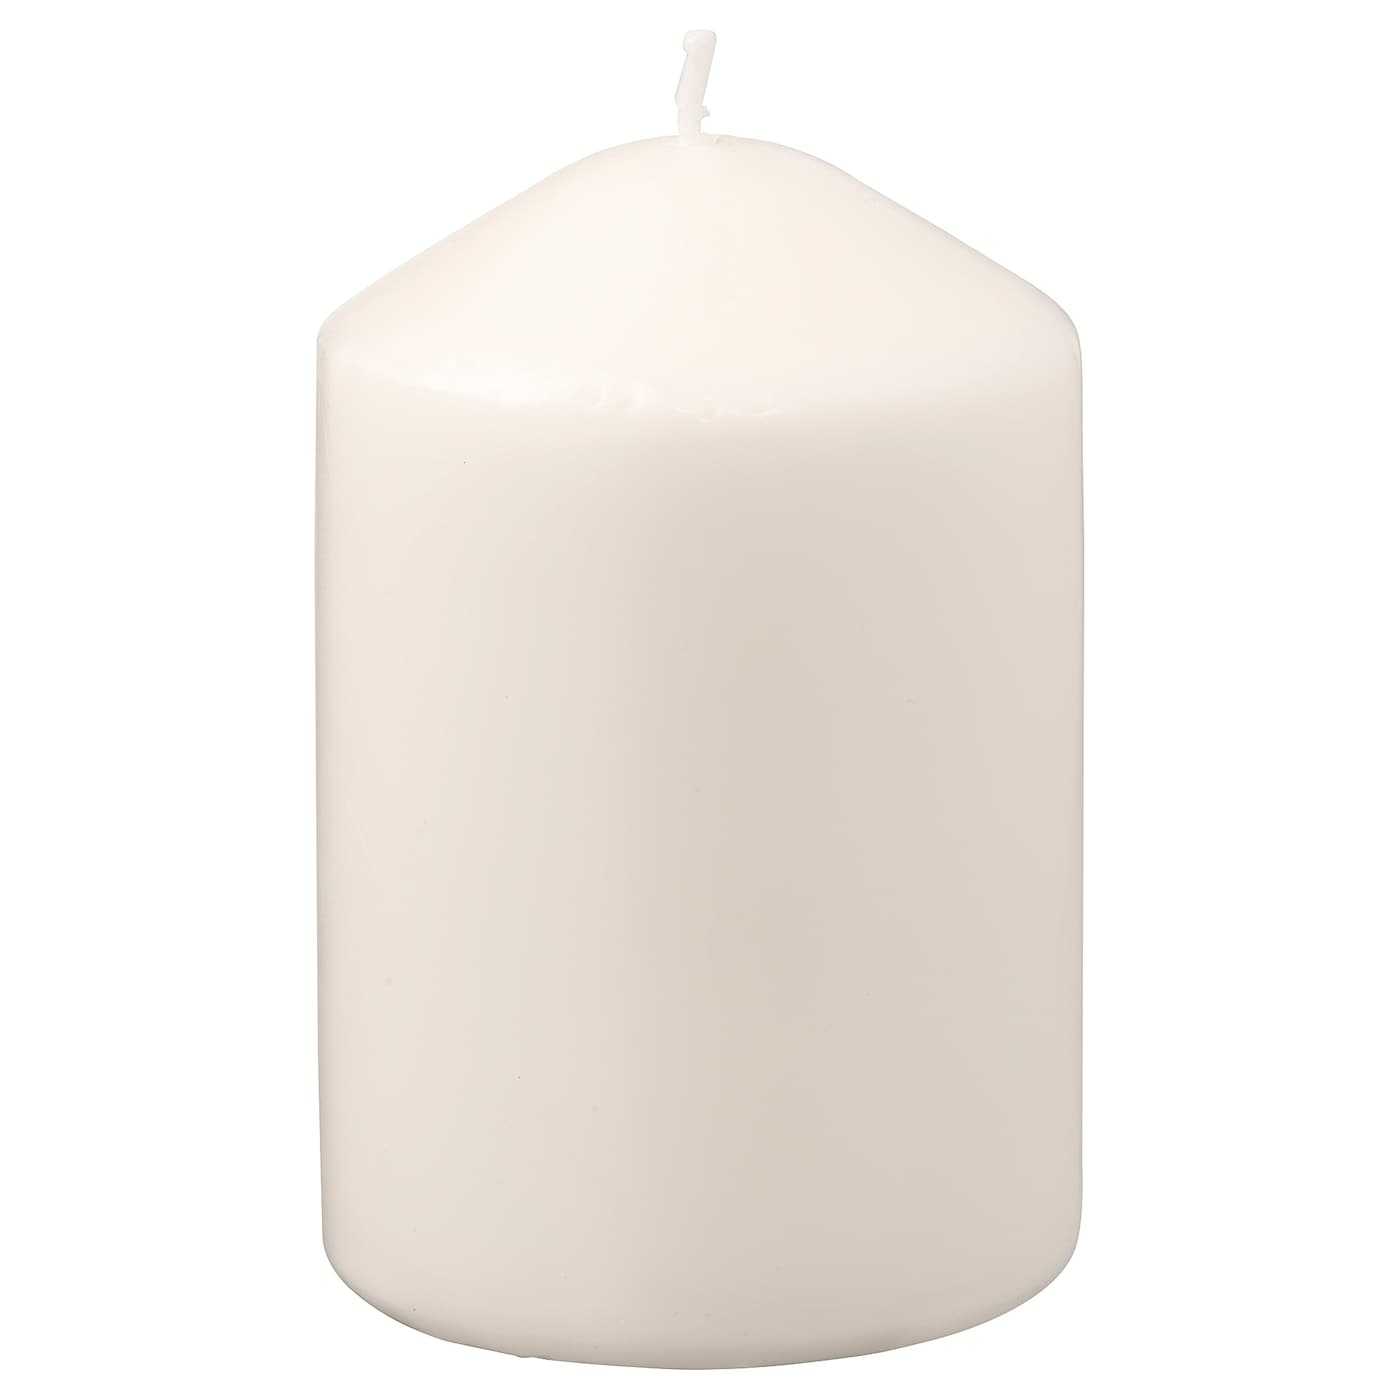 IKEA LÄTTNAD unscented block candle